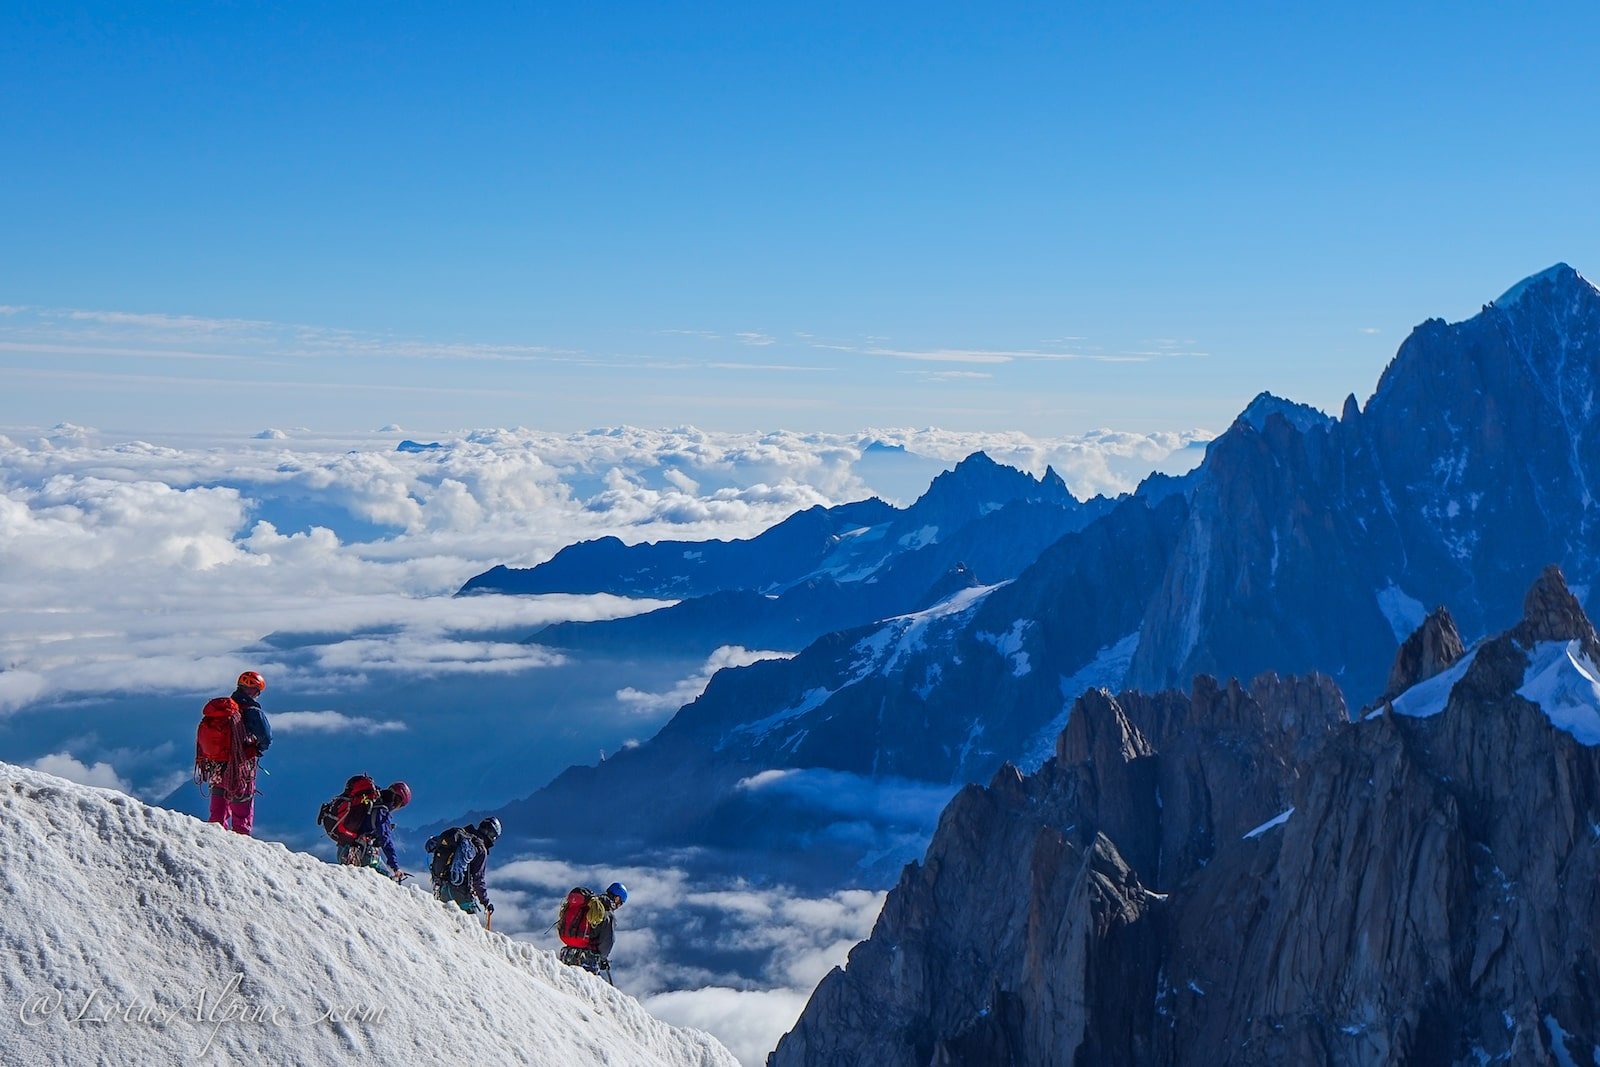 European Alps Climbing Program in Chamonix France.